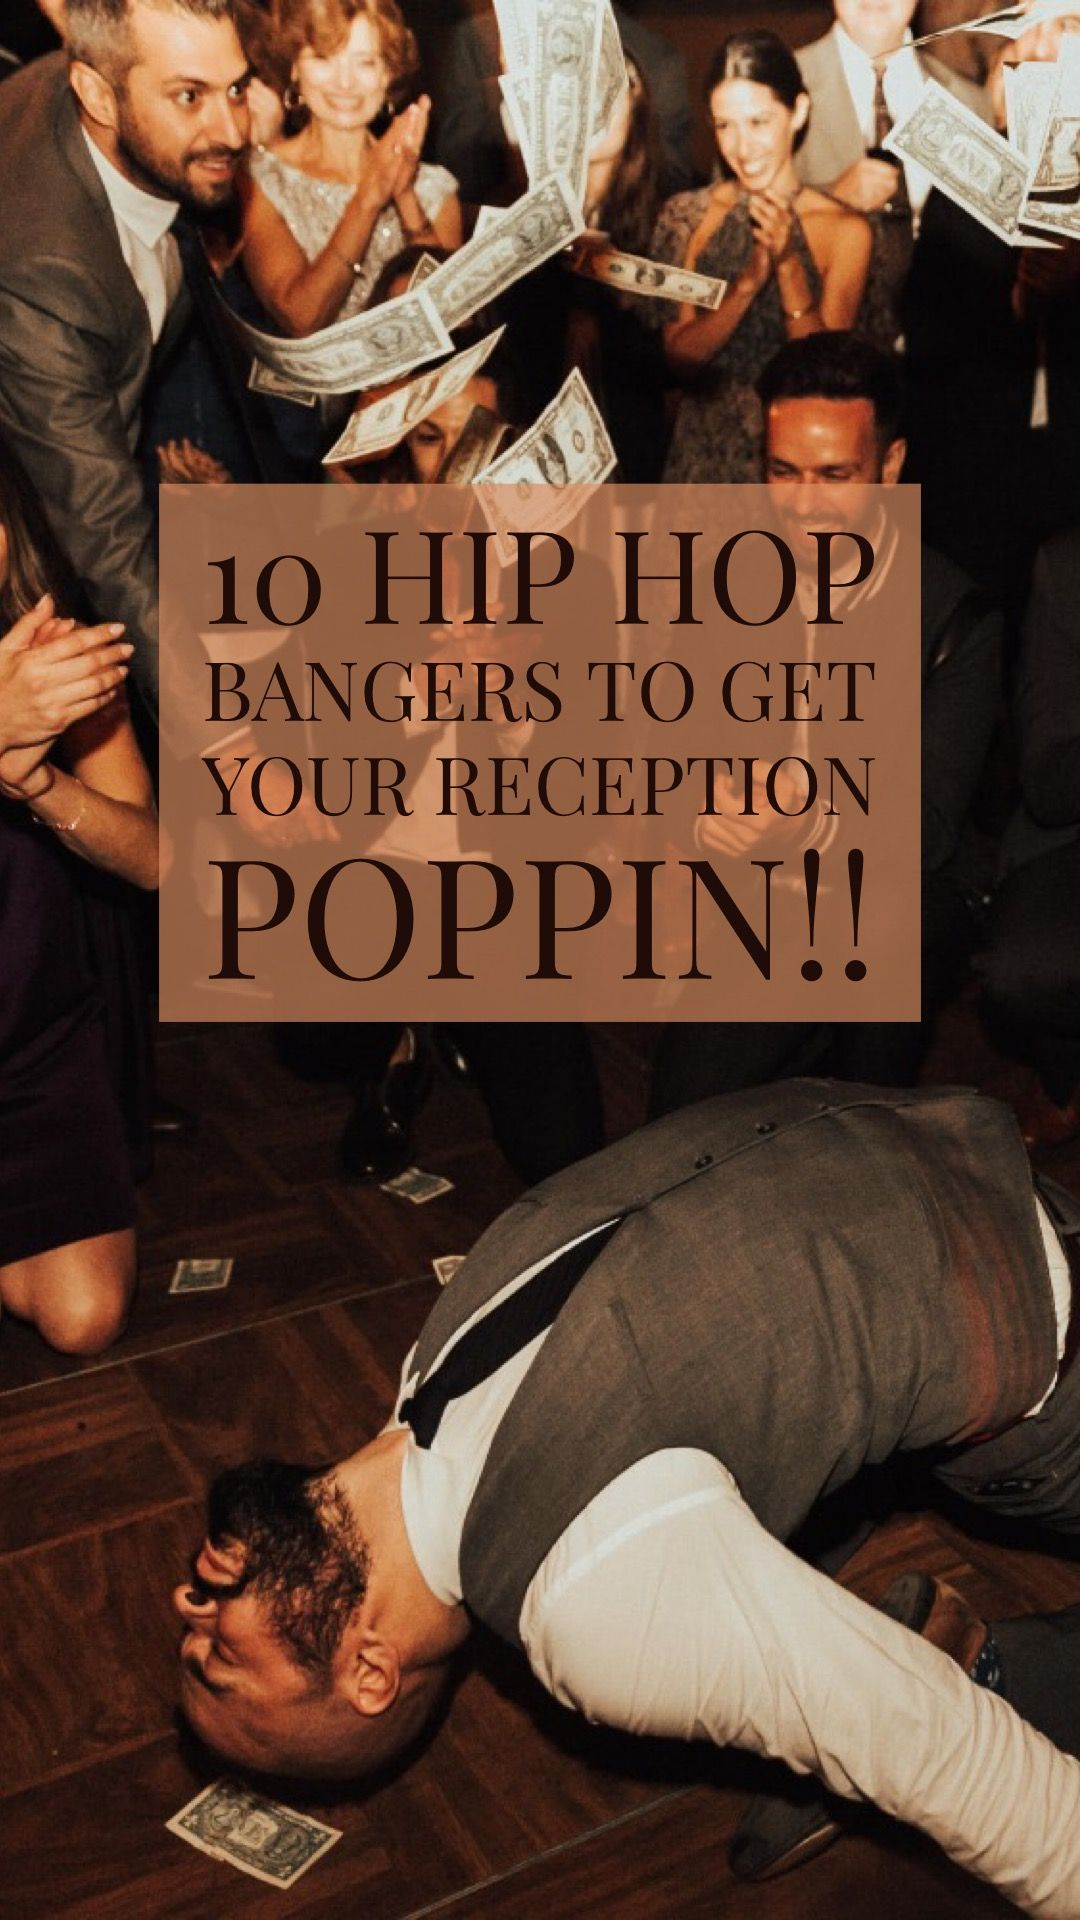 10 Hip Hop Bangers To Get Your Reception Poppin' Wedding